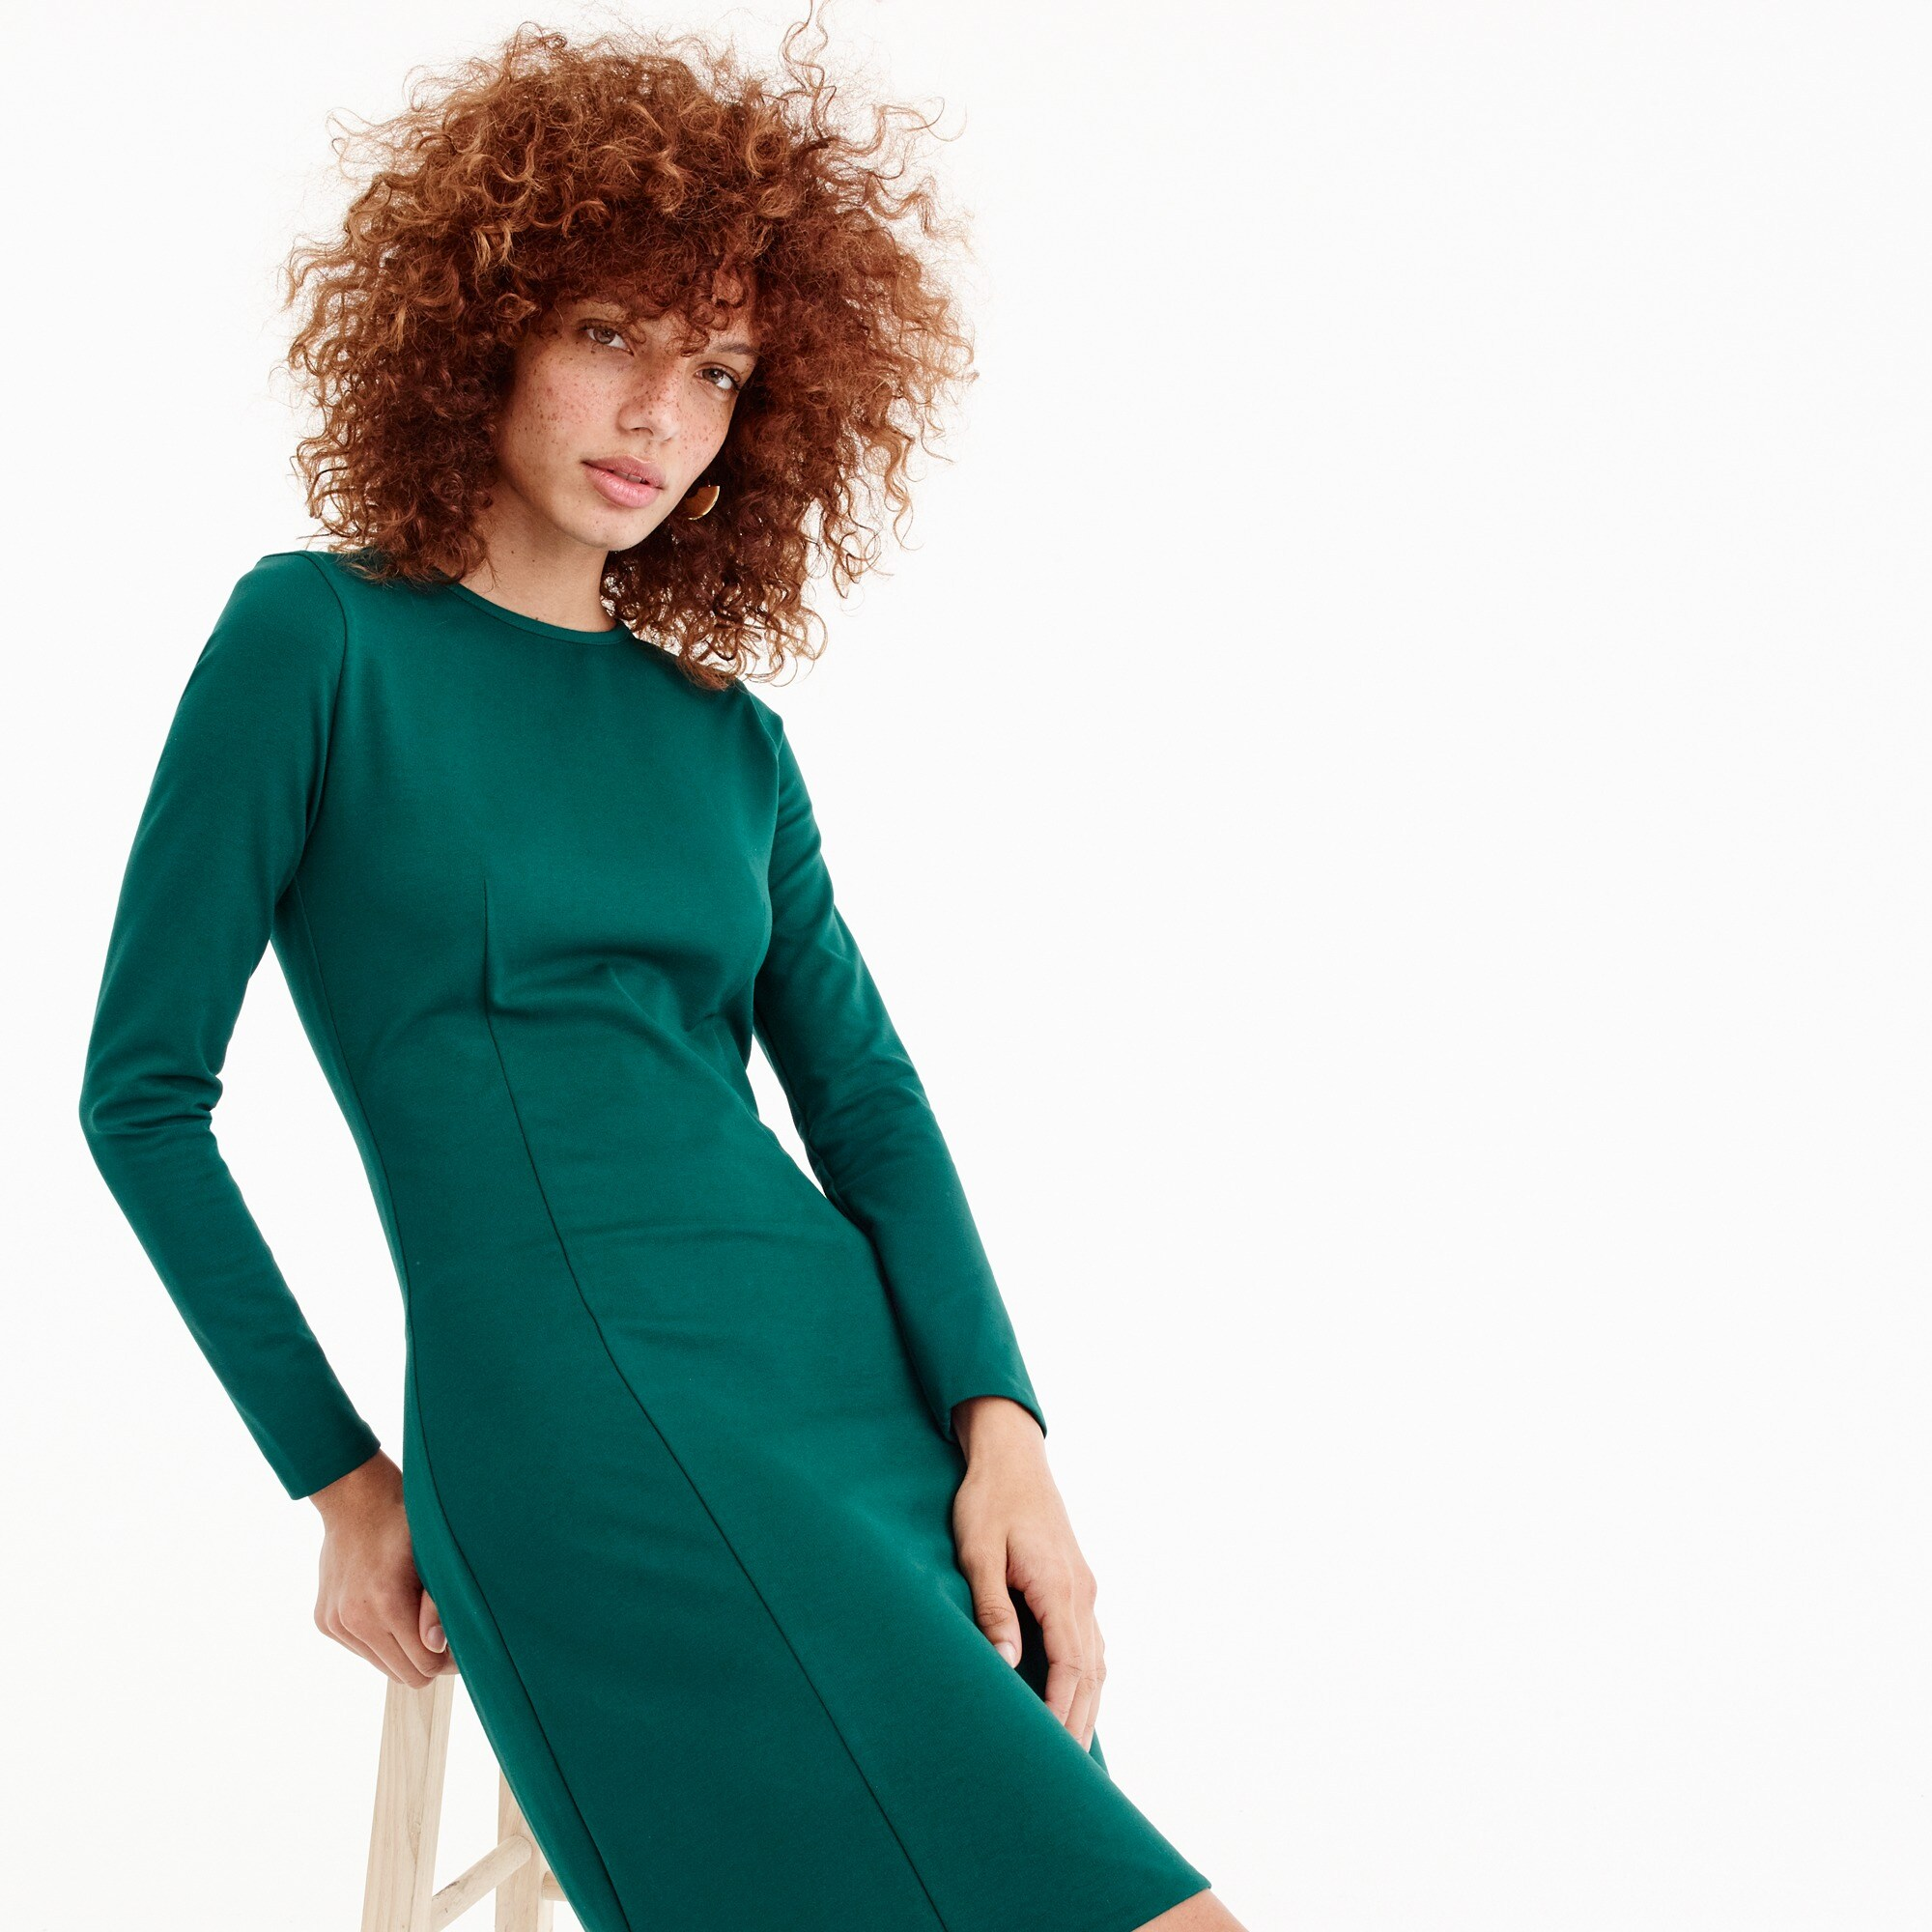 Image 1 for Petite Long-sleeve sheath dress